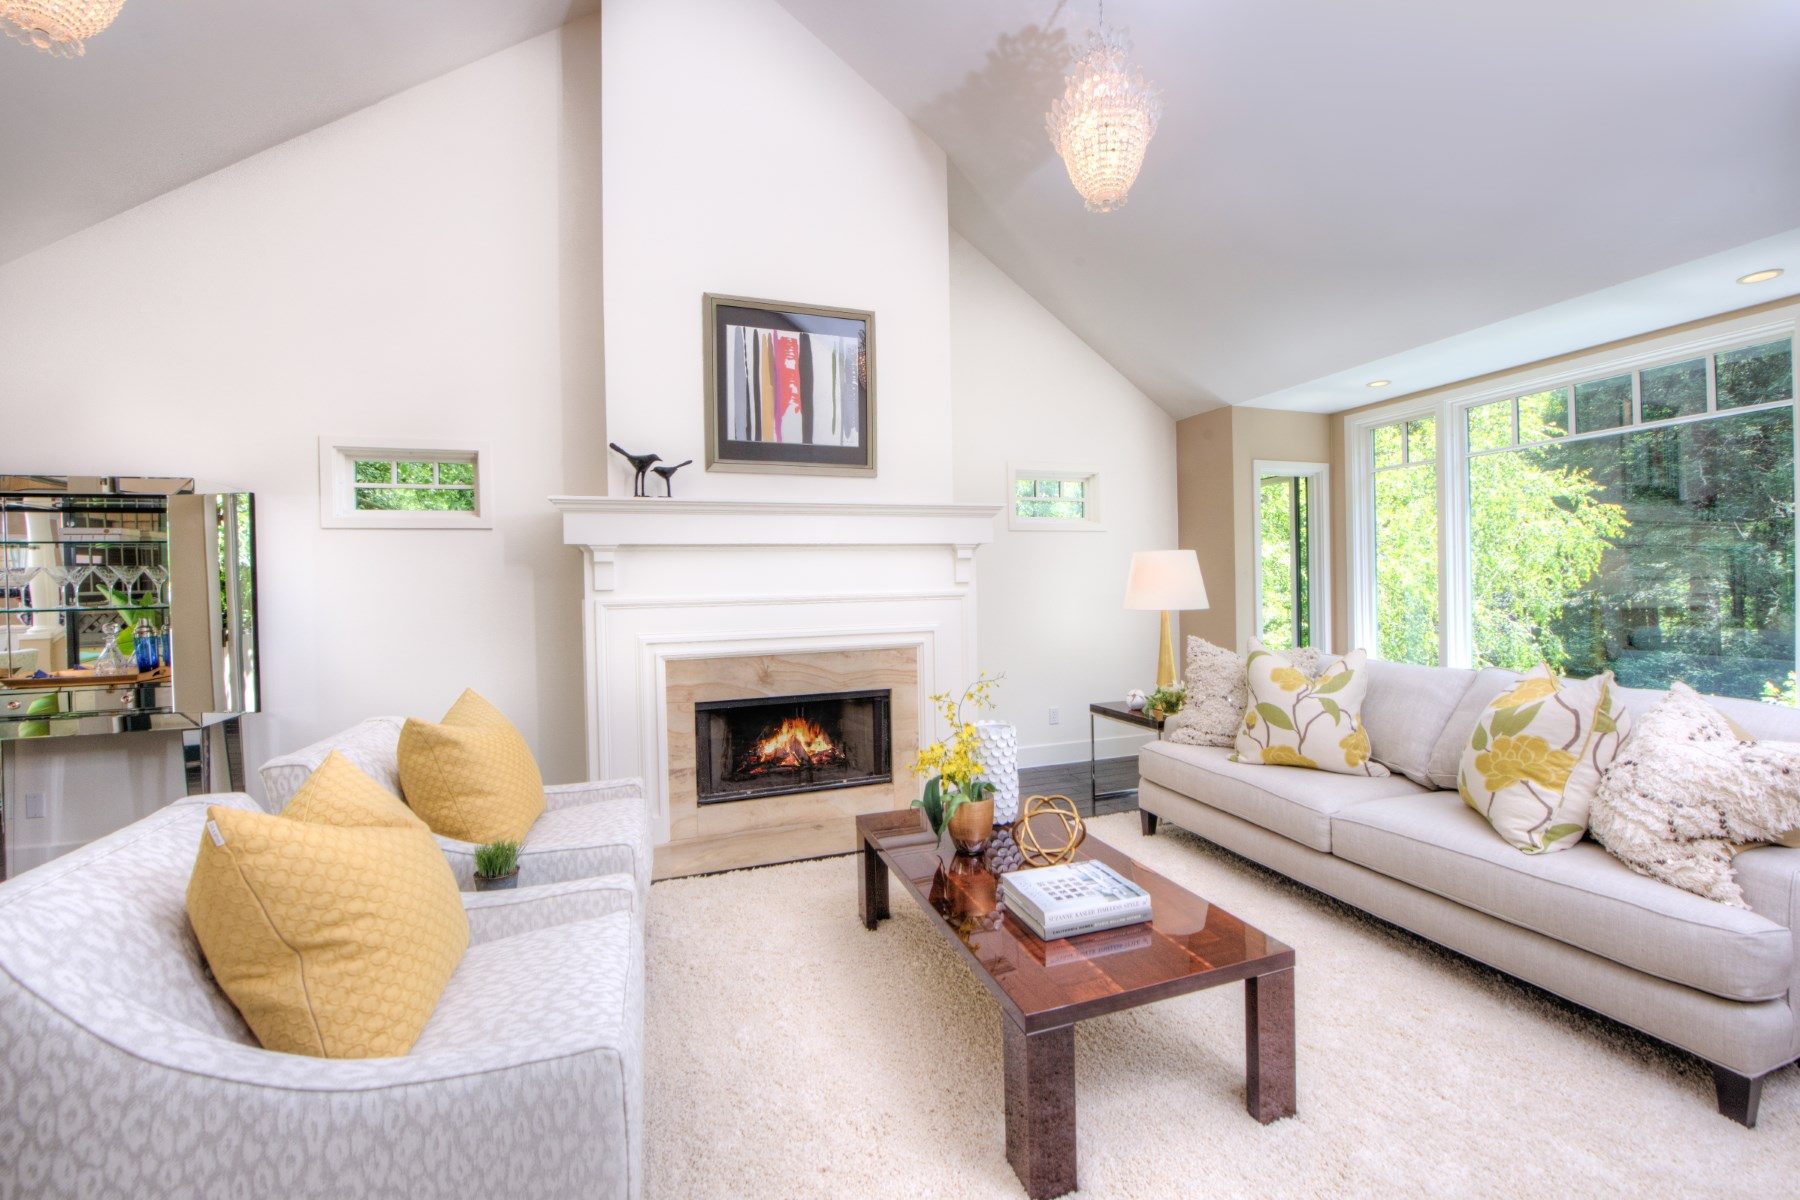 Single Family Home for Sale at Cascade Canyon Craftsman 20 Wainwright Pl Mill Valley, California, 94941 United States